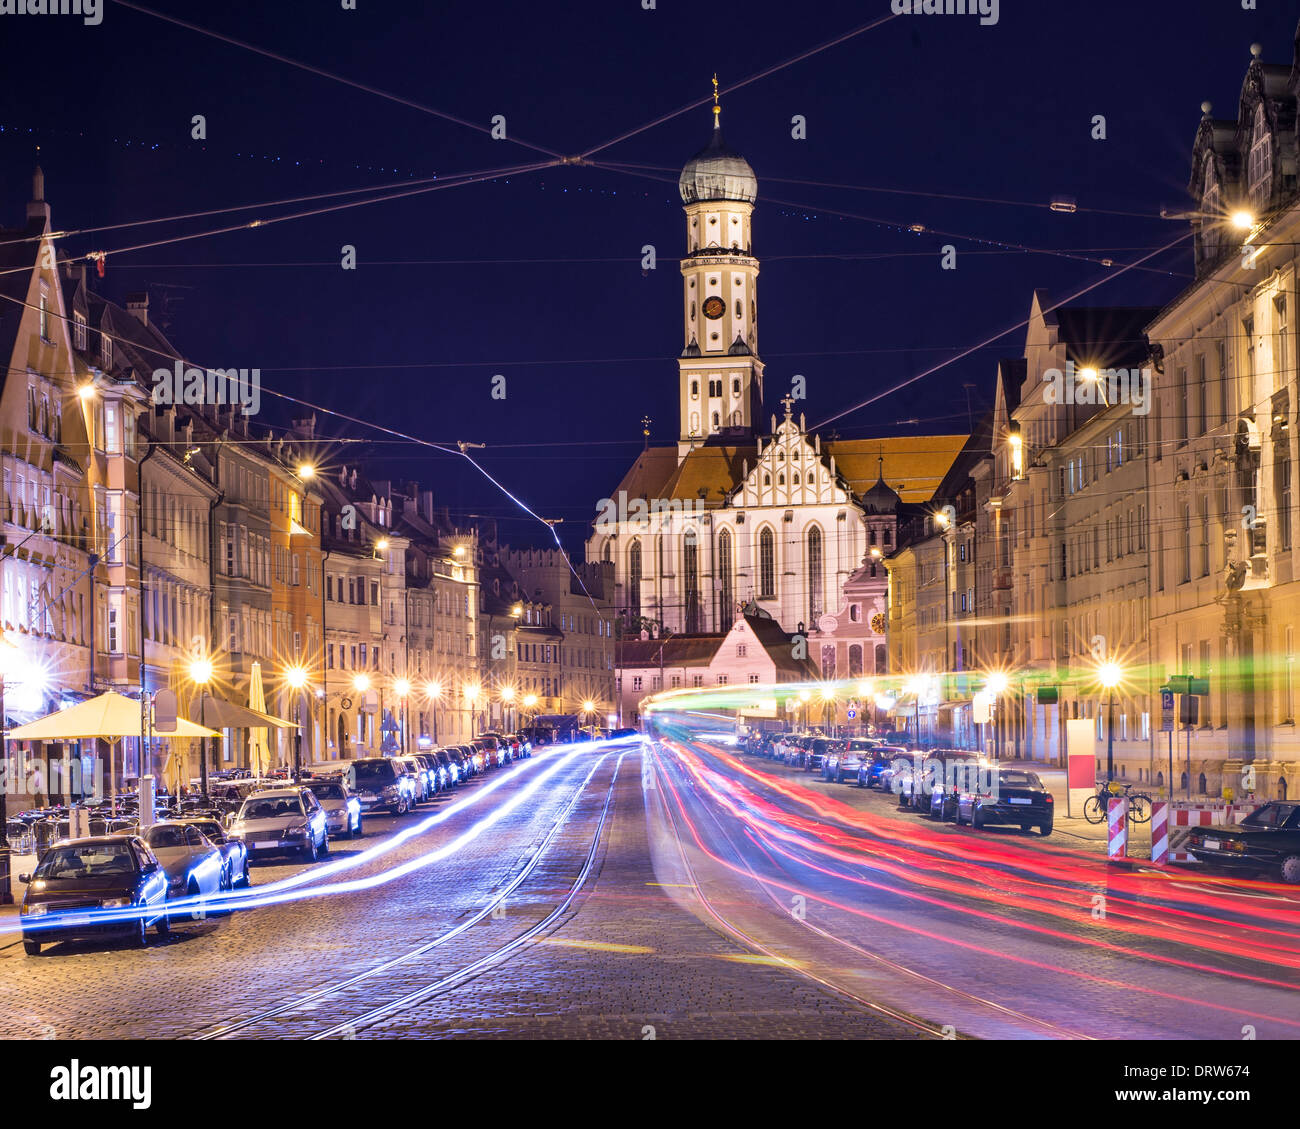 Augsburg, Allemagne paysage urbain. Photo Stock